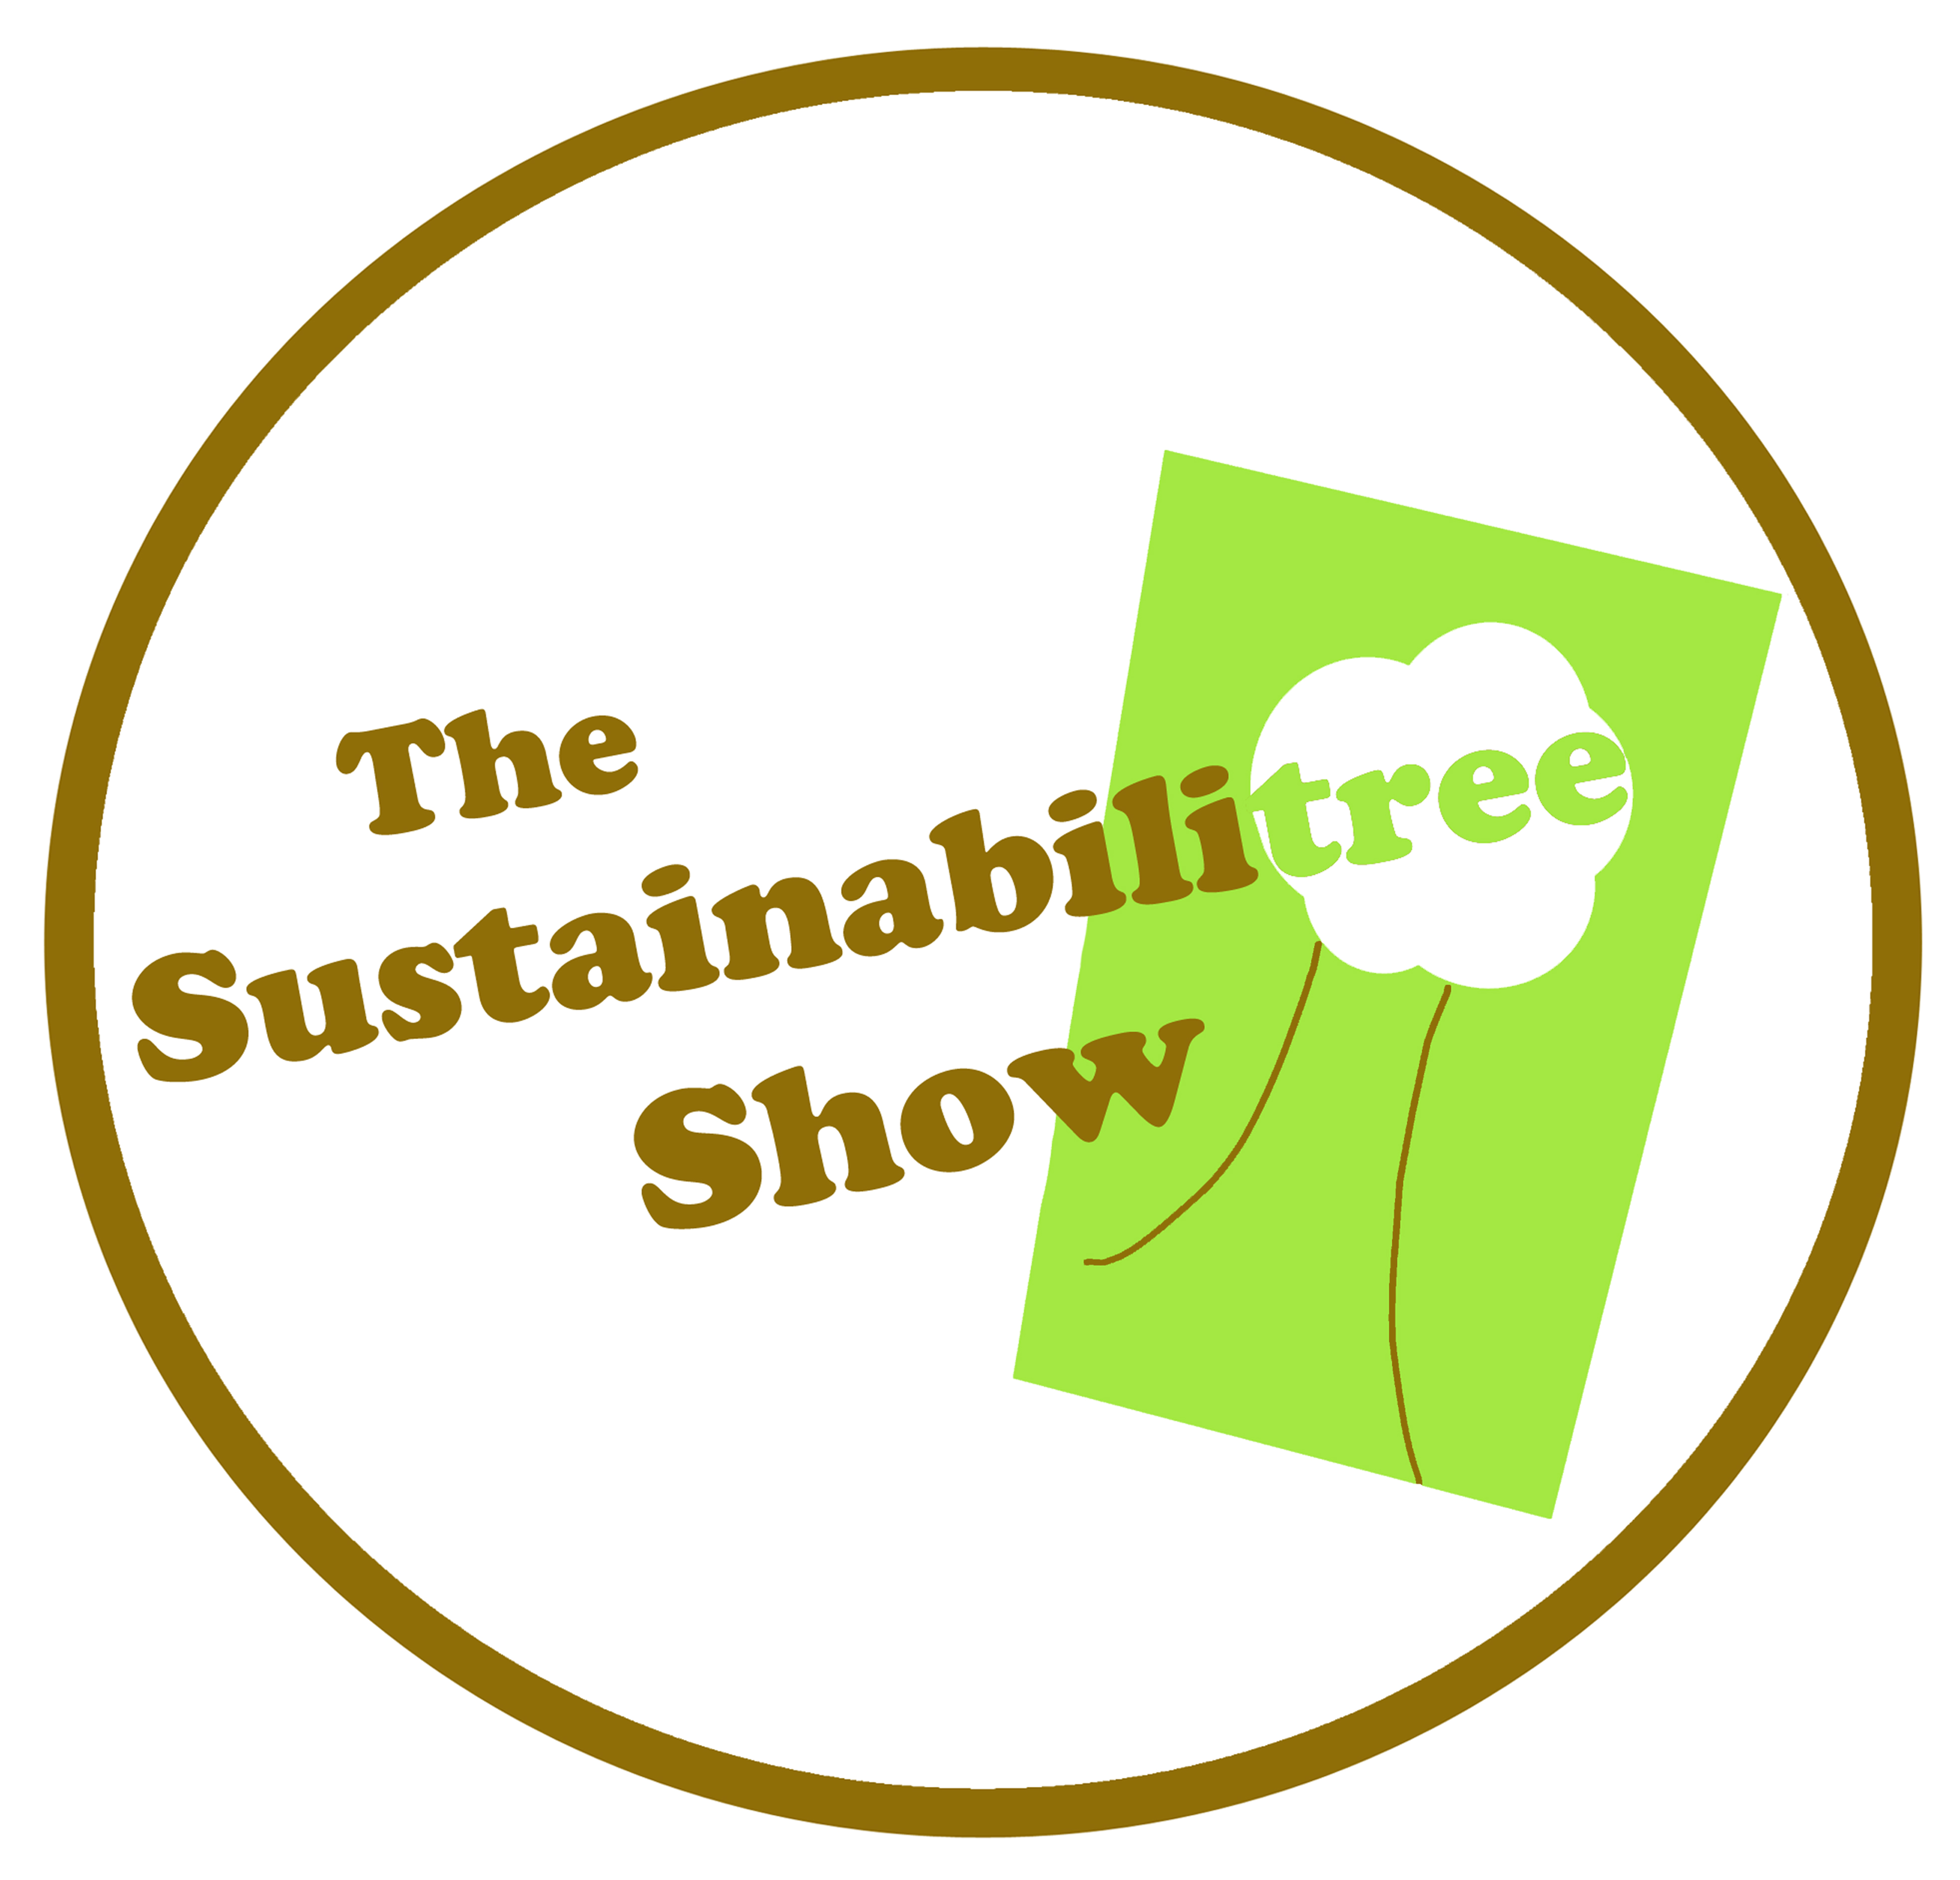 The Sustainabilitree Show Logo